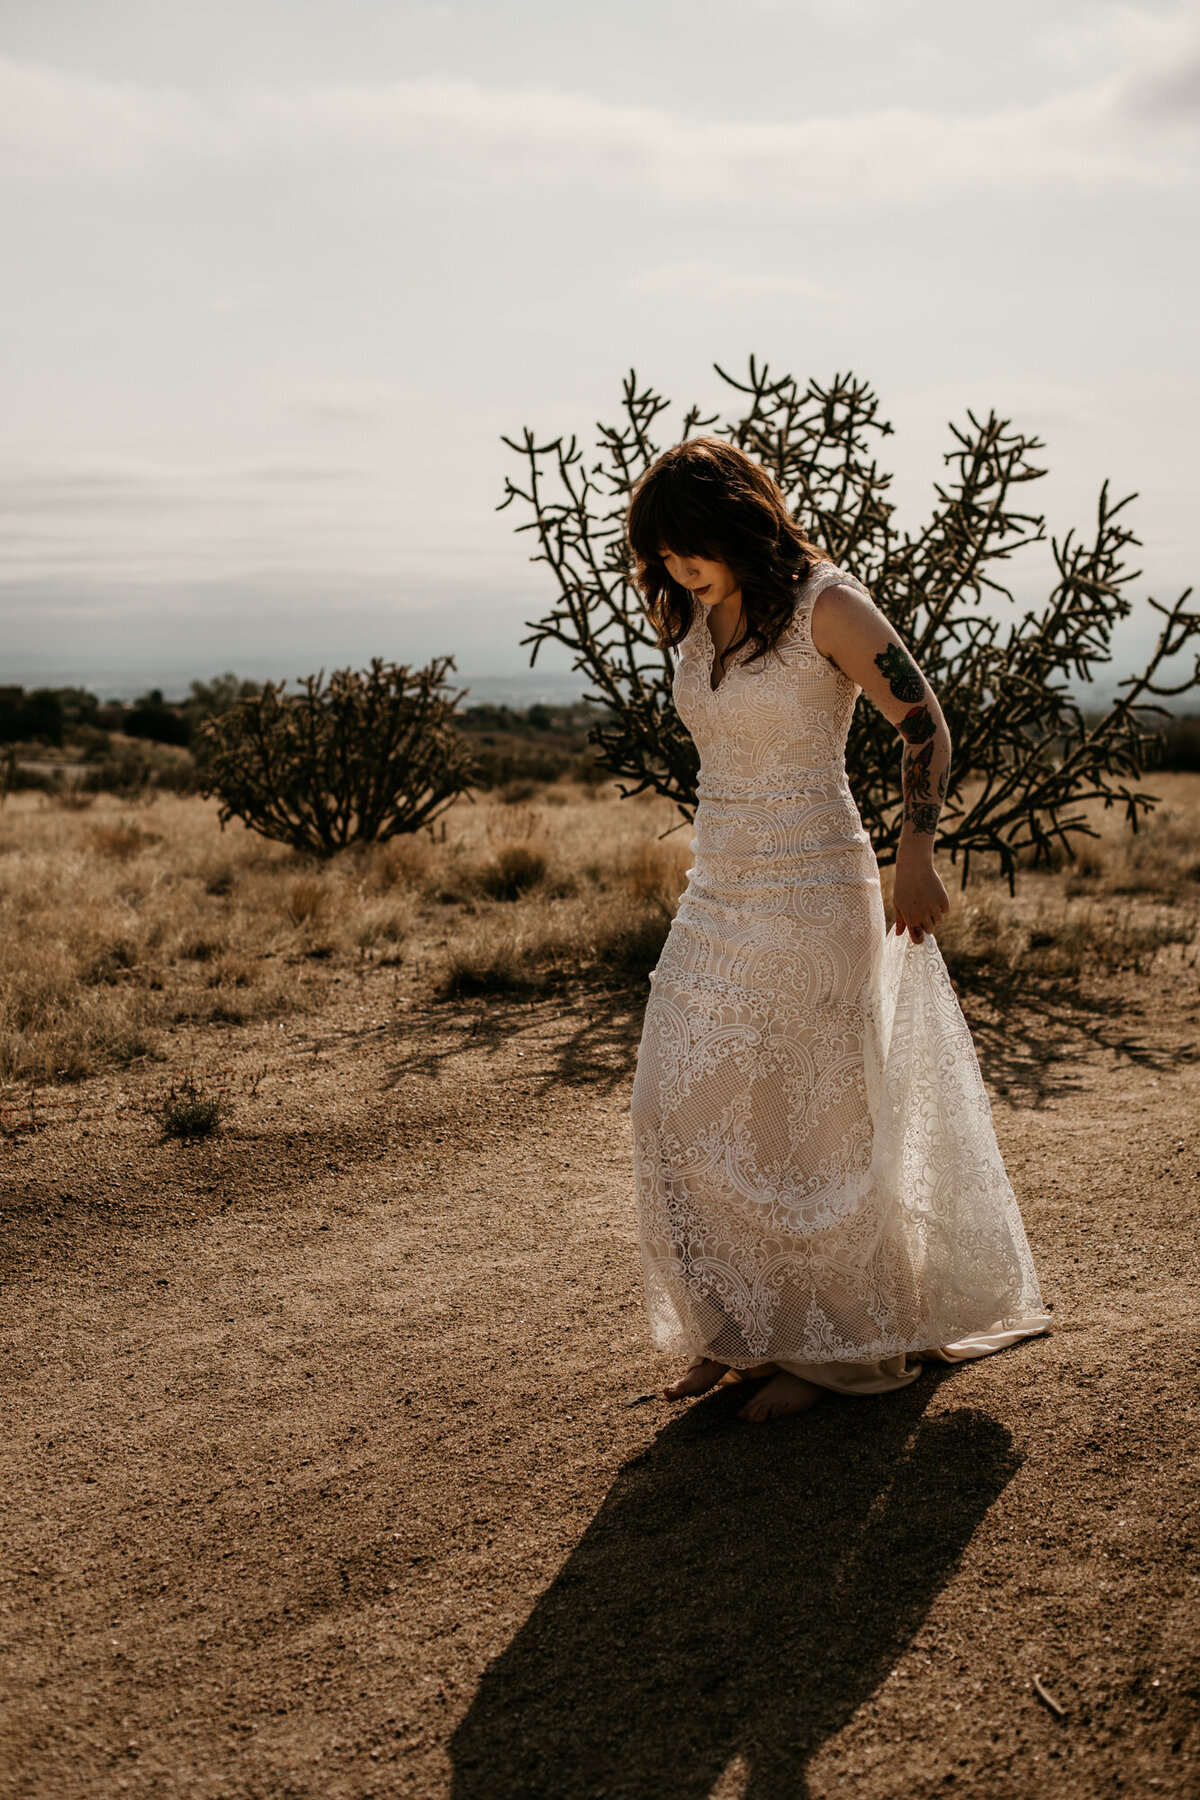 Dress-Rentals-for-Styled-Shoots-Elopement-Weddings-32